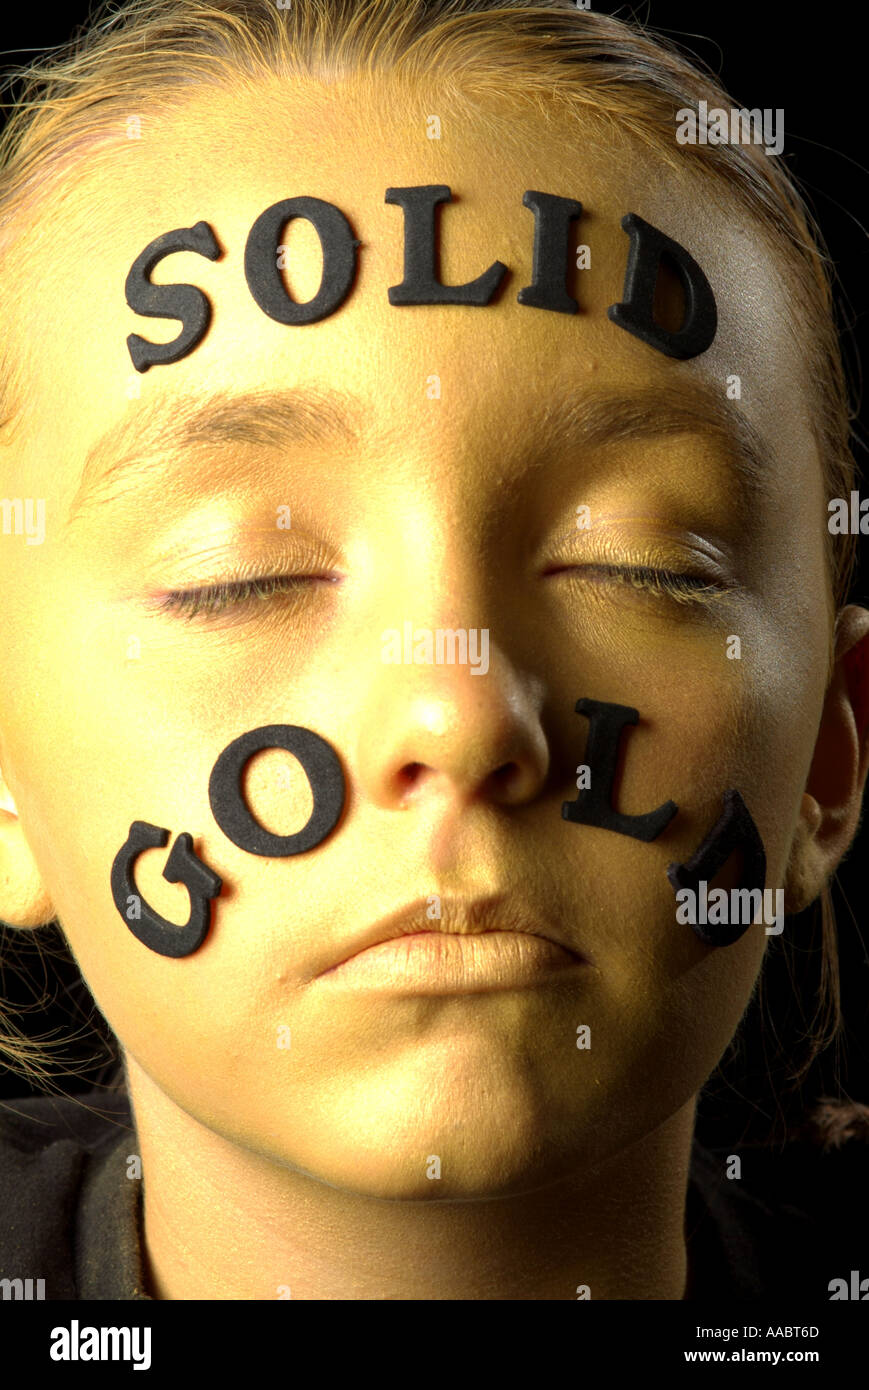 gold face girl with eyes closed faced solid gold lettering - Stock Image